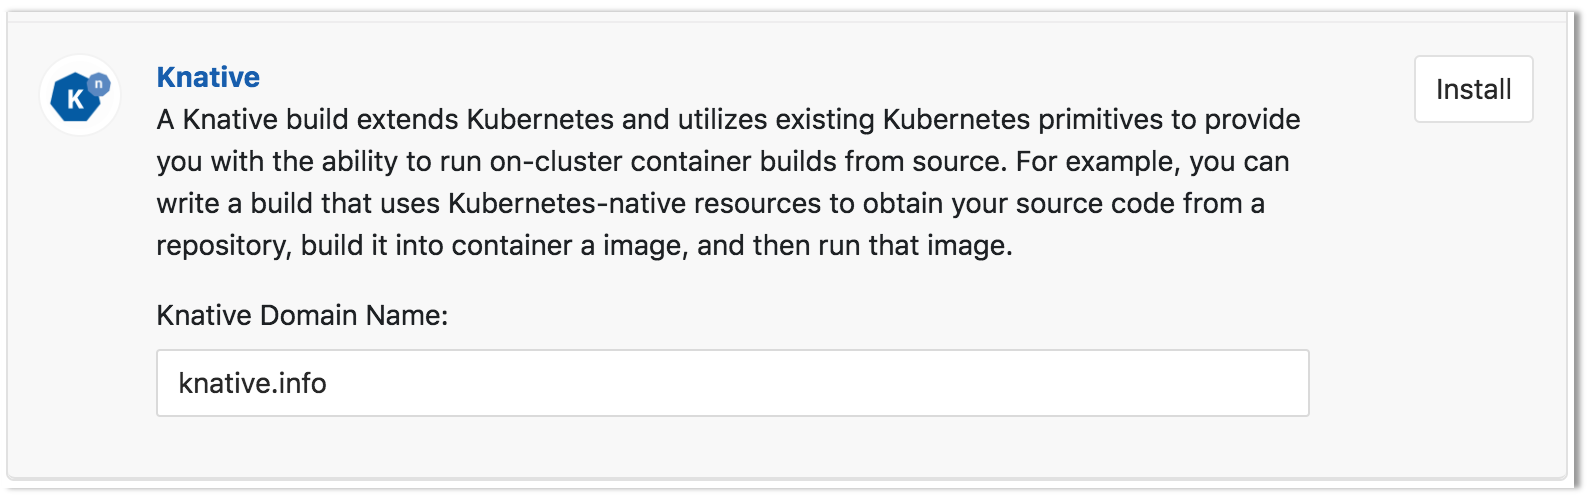 doc/user/project/clusters/serverless/img/install-knative.png